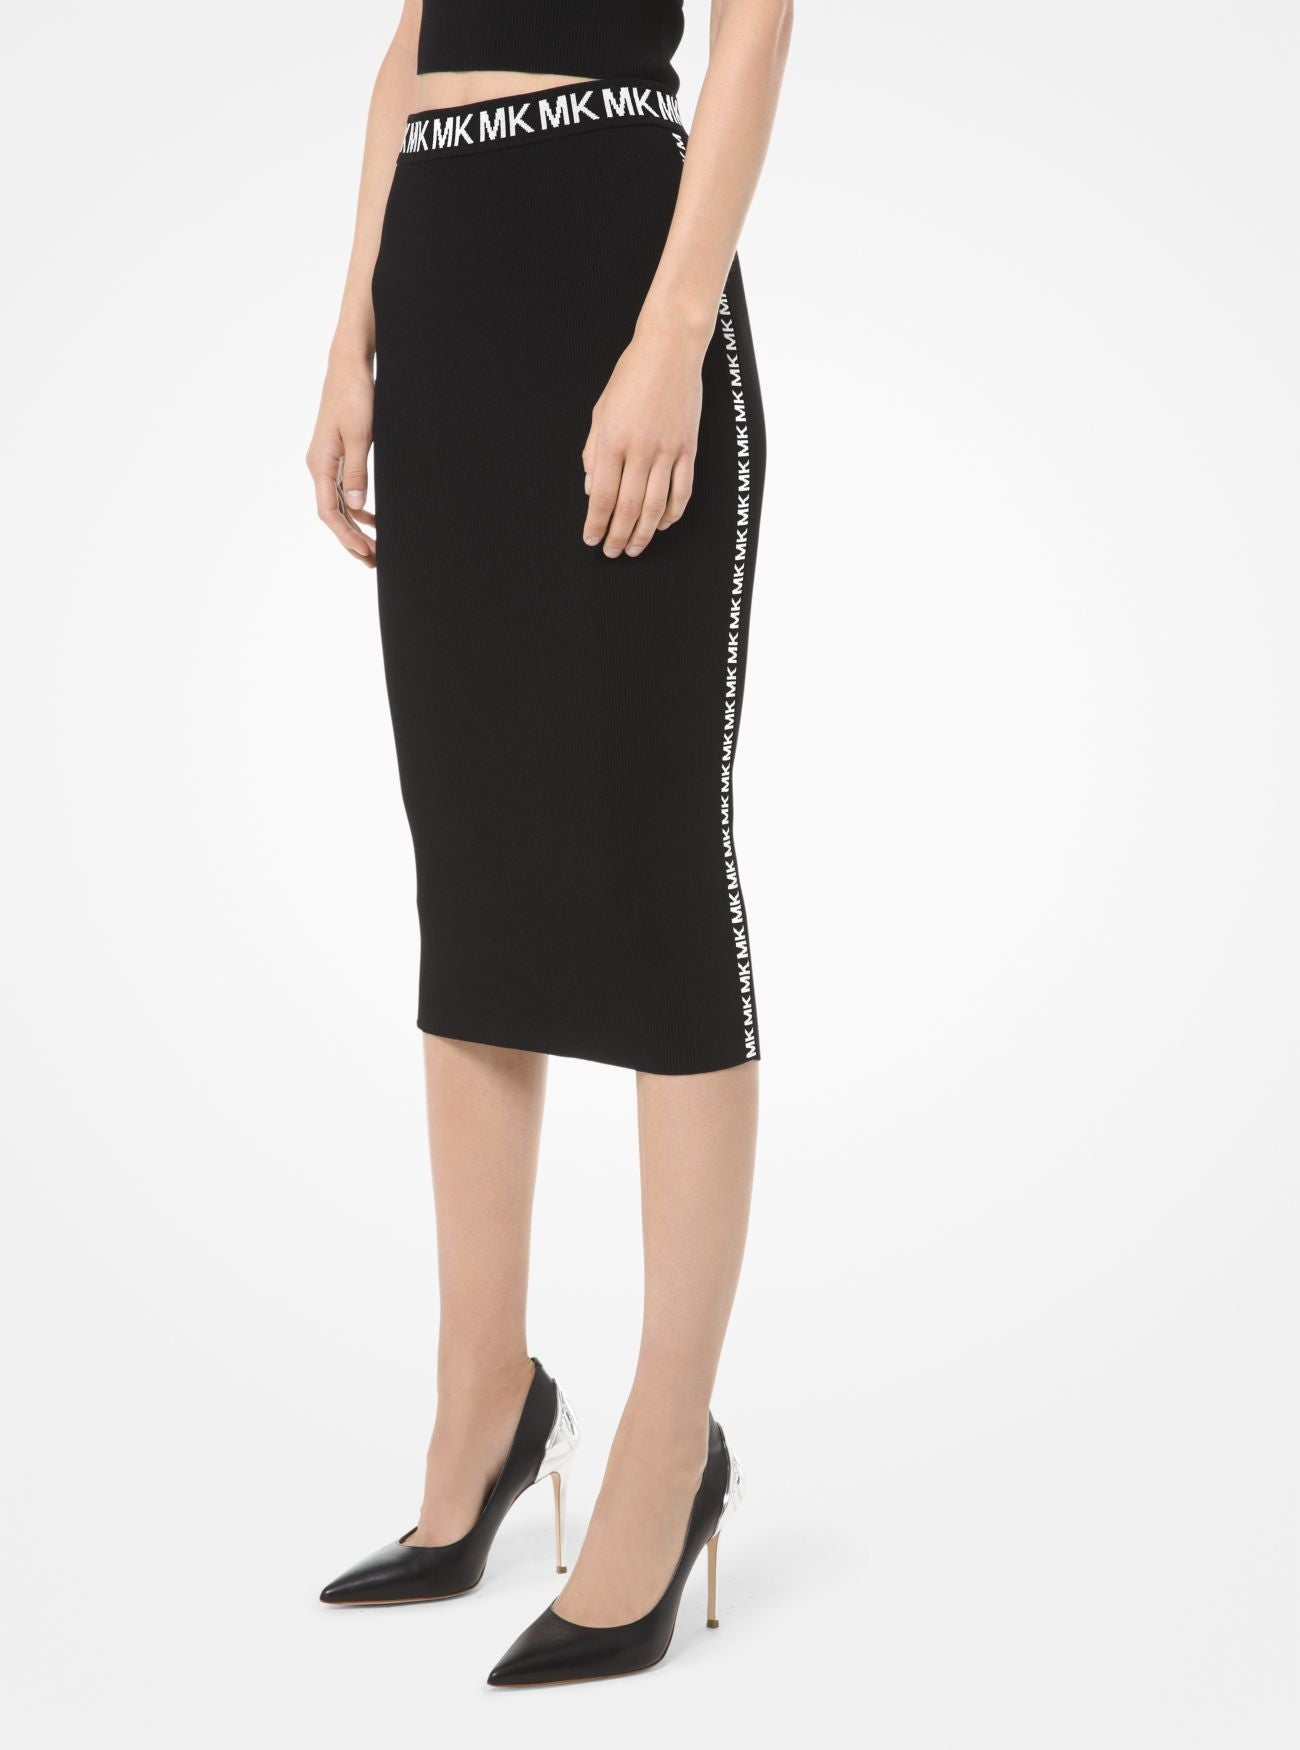 MICHAEL MICHAEL KORS Logo-Trim Stretch-Viscose Pencil Skirt